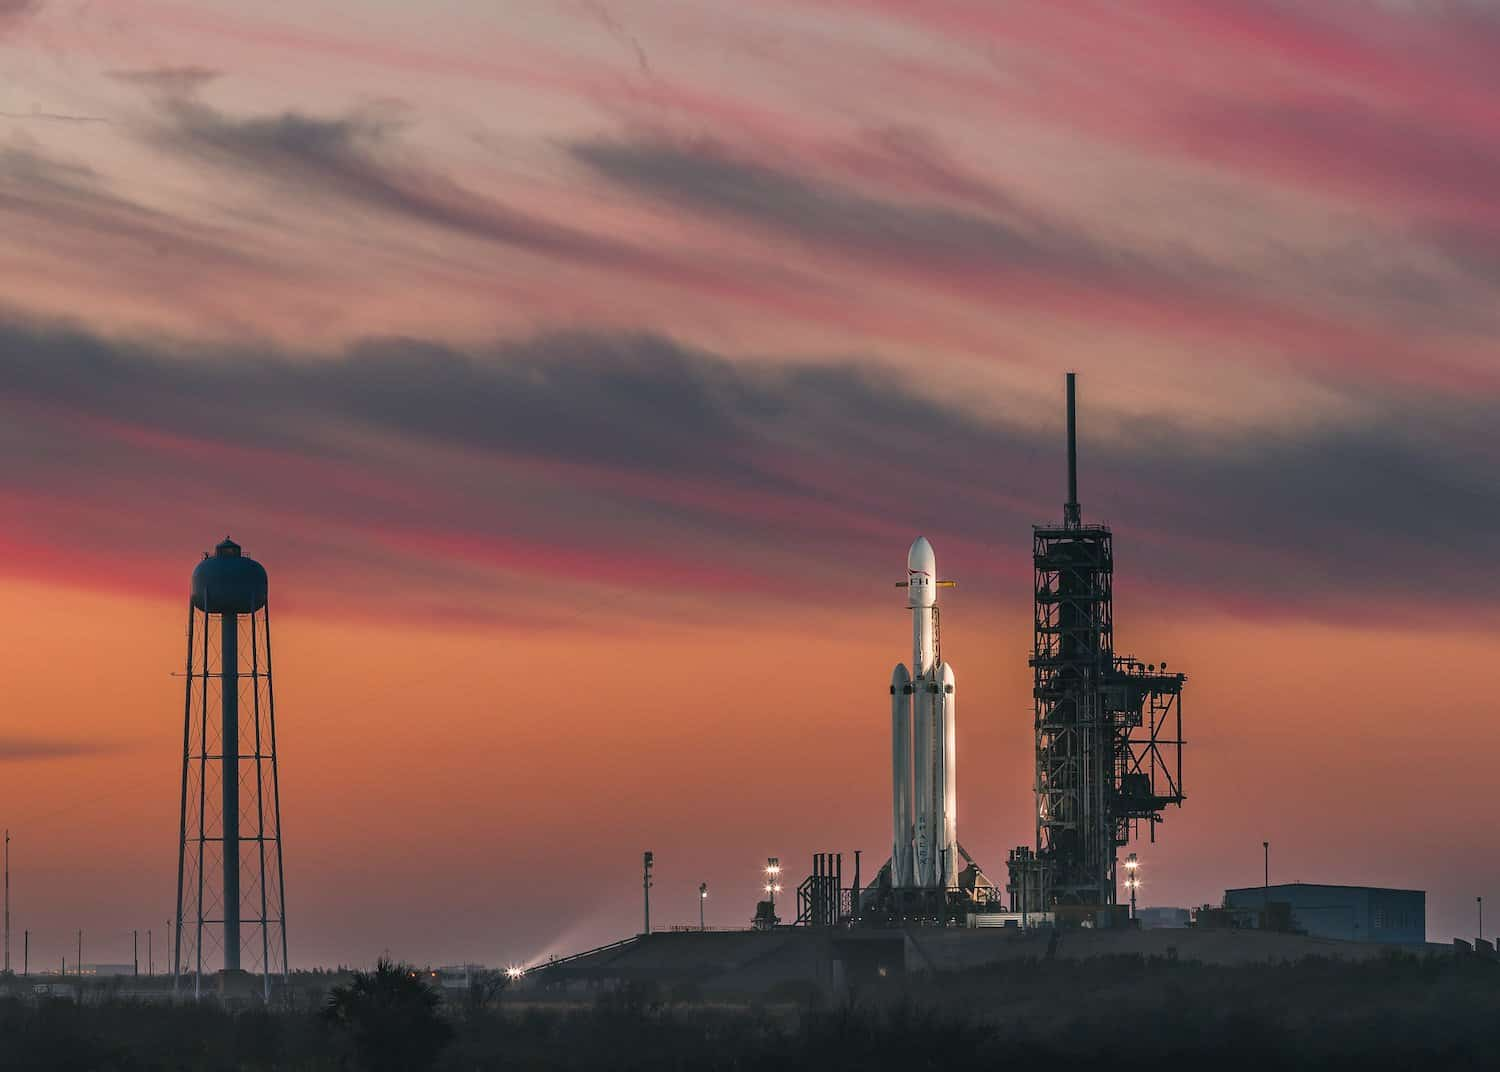 Trip to See a Rocket Launch - SpaceX at Sunrise